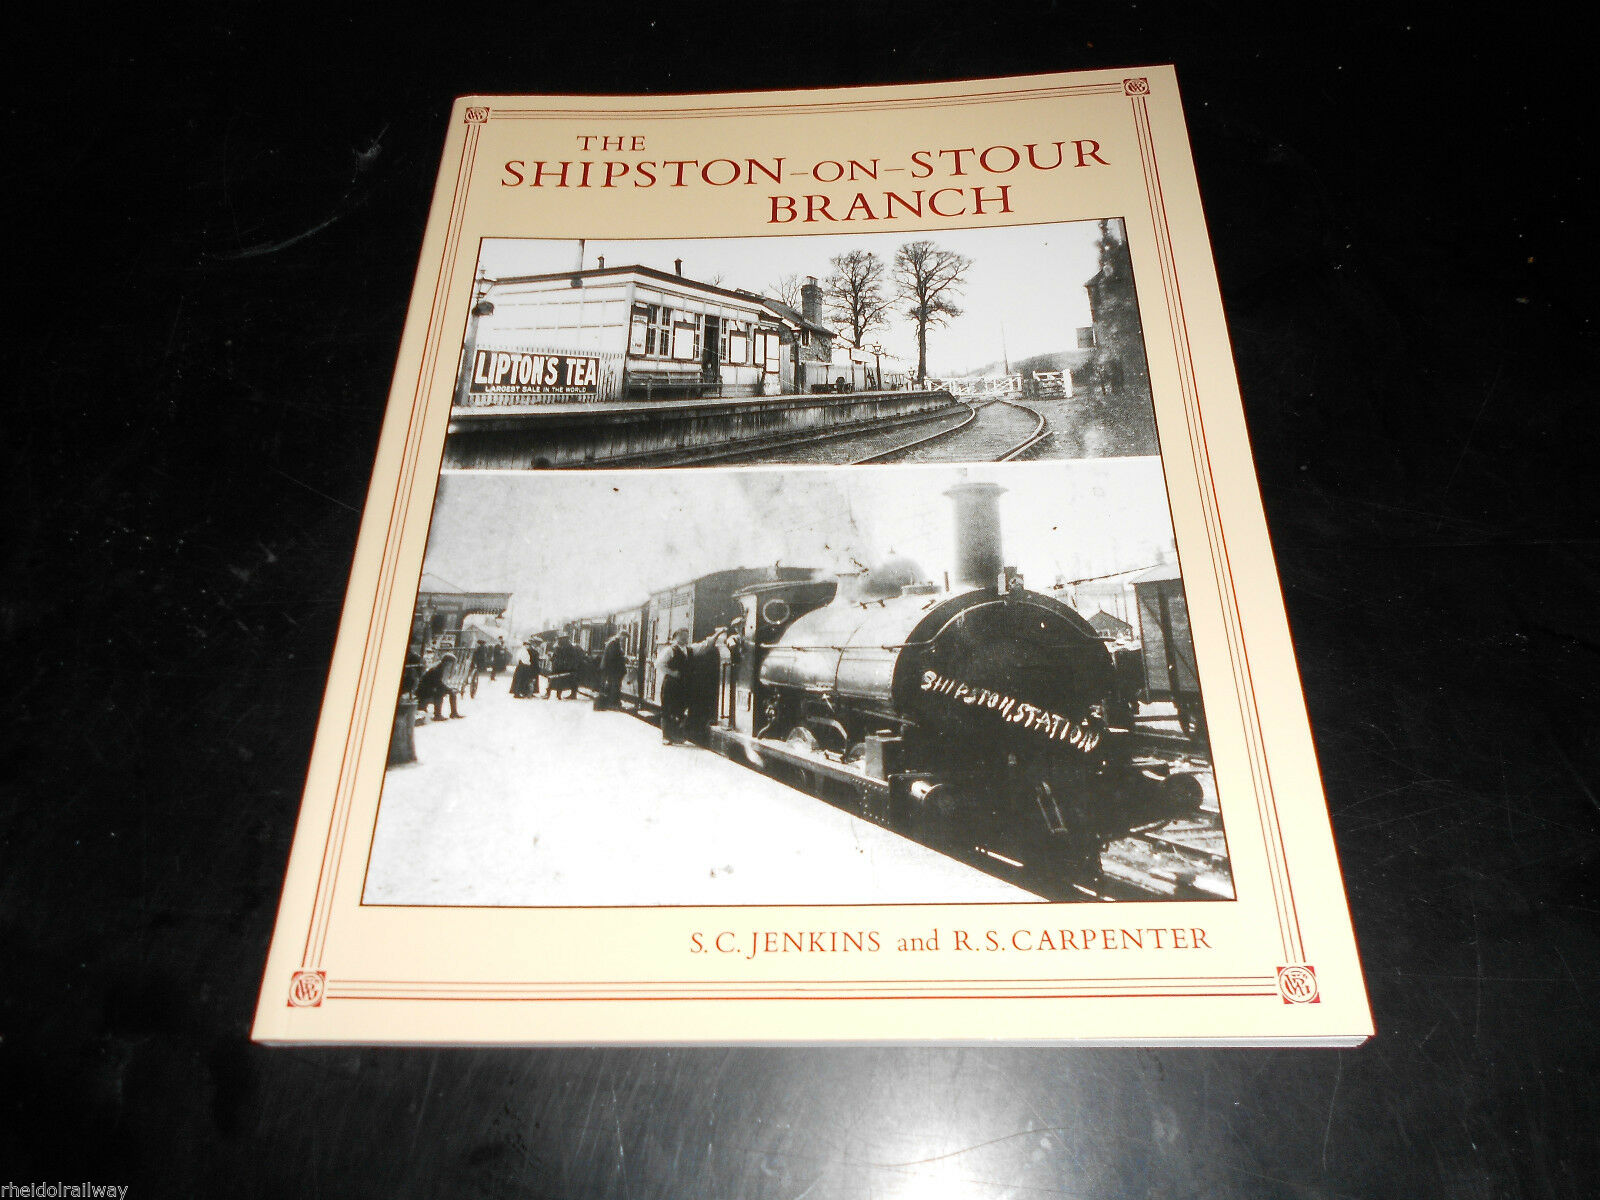 Shipston-on-Stour Branch by Stanley Jenkins, Stanley C. Jenkinson, Roger... - The Vale of Rheidol Railway